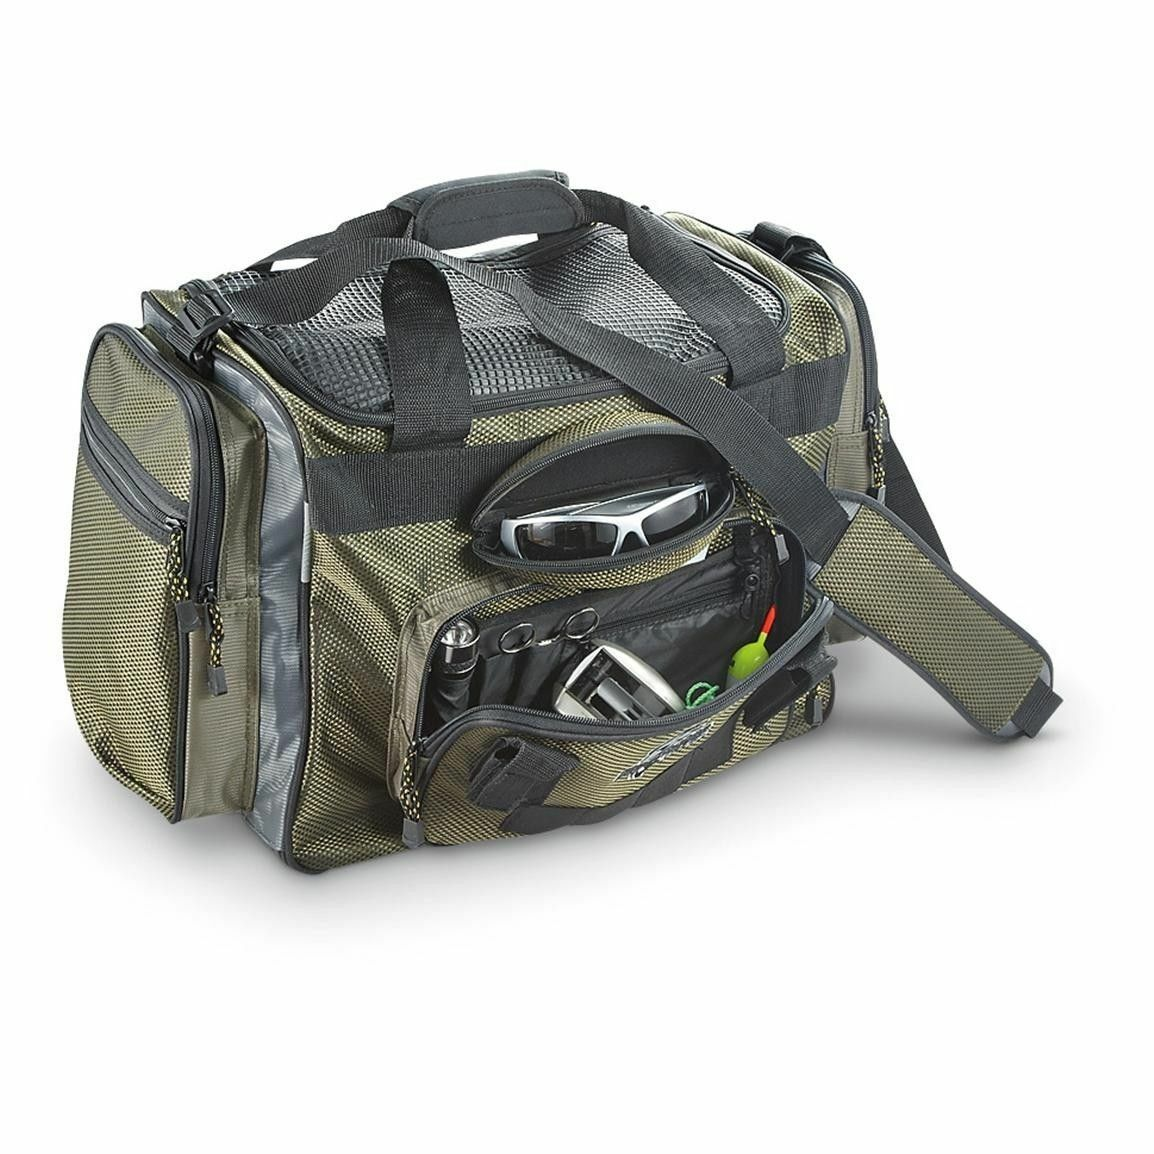 Okeechobee fats deluxe large green fishing tackle bag for Fishing tackle bag